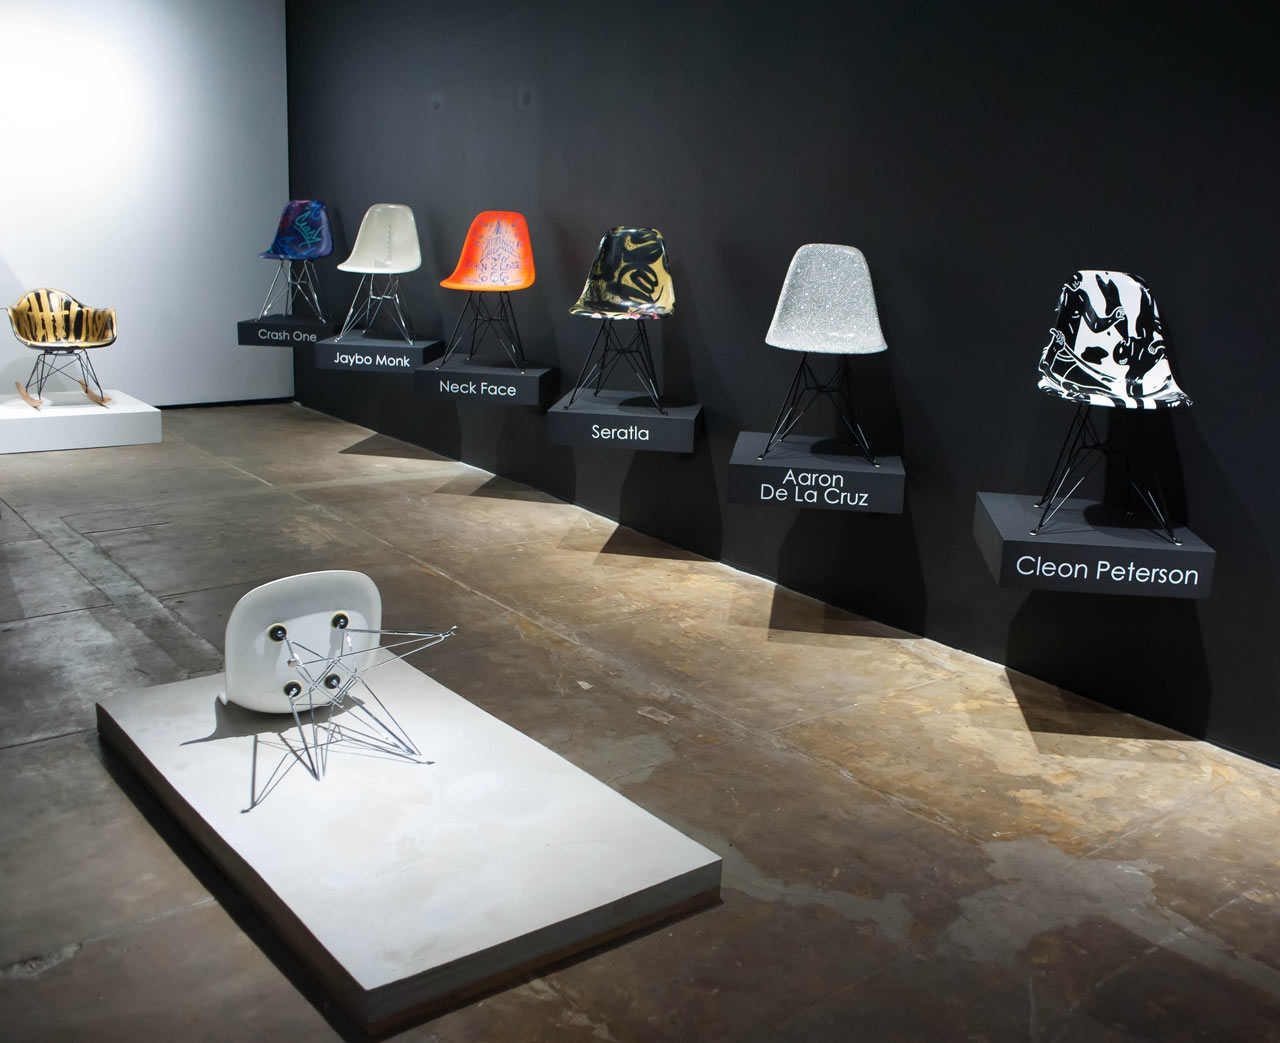 THE SOZE COLLECTION: A Group Exhibit with Modernica